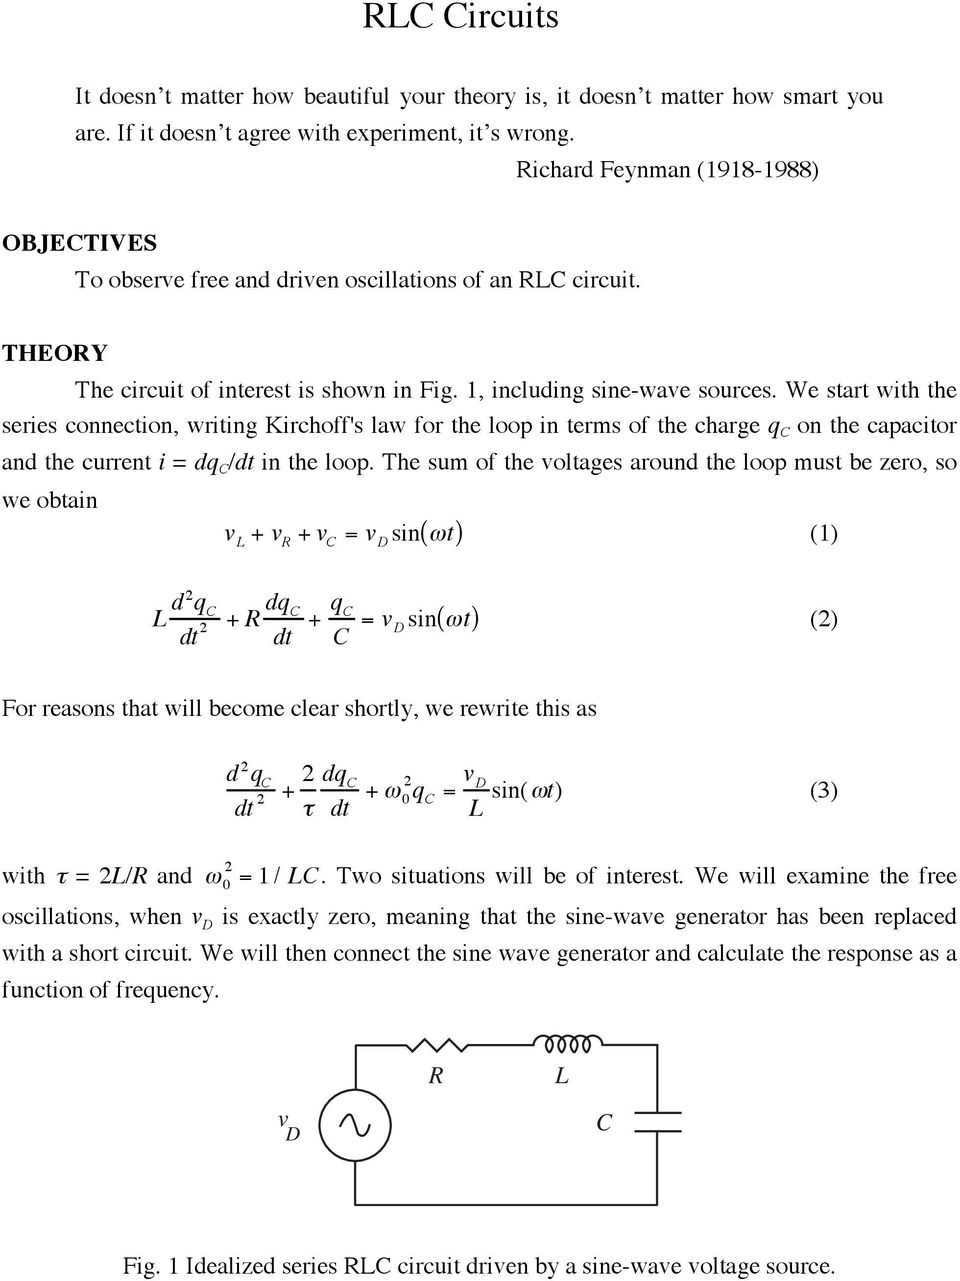 Rlc Circuits Objectives To Observe Free And Driven Oscillations Of Dc Help Solving A 2ndorder Circuit Electrical Engineering We Start With The Series Connection Writing Kirchoffs Law For Loop In Terms